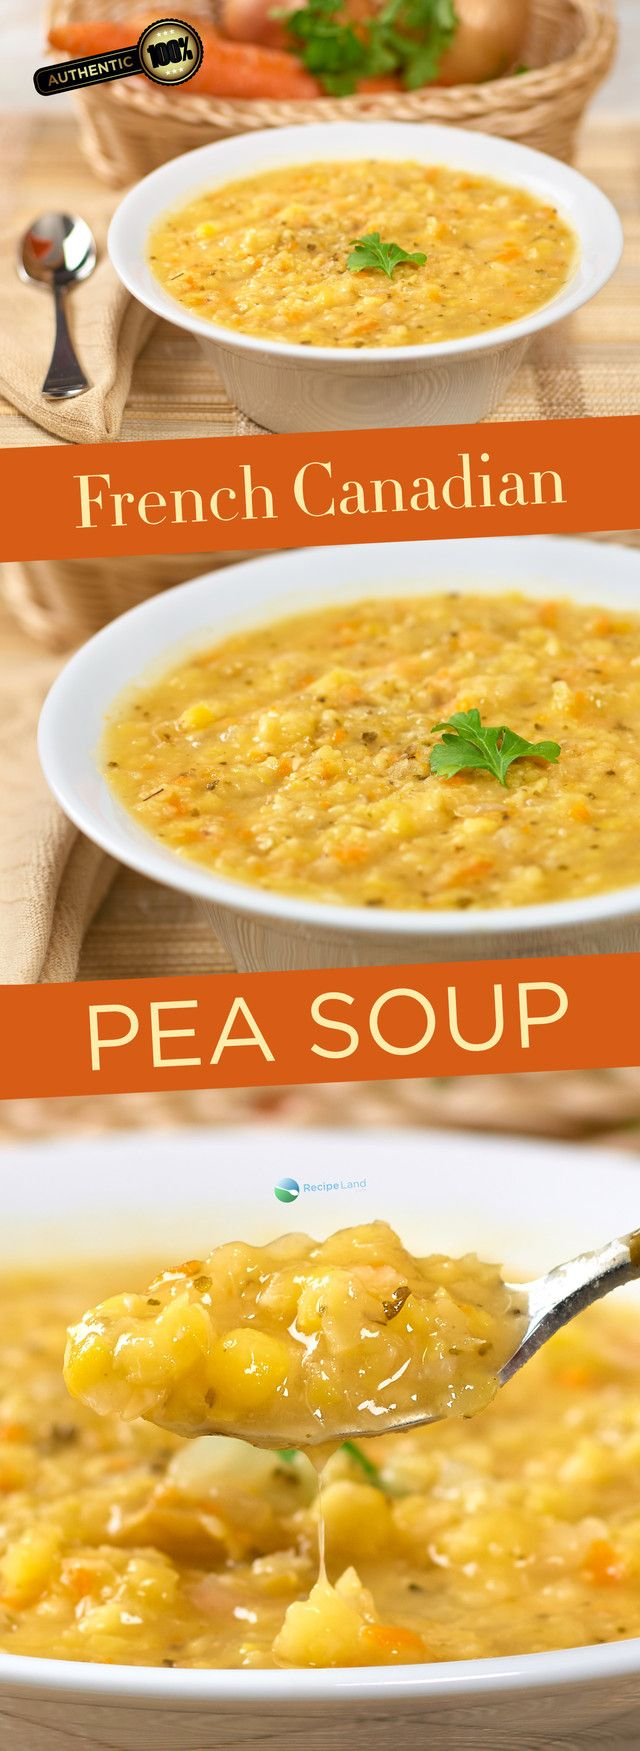 This authentic French Canadian recipe is a classic belly warmer and perfect for a cold day.  Split-pea soup with a ham bone, ham hock or salt pork.  Make it a vegetarian split-pea soup by leaving out the ham bone and using vegetable stock instead of water.